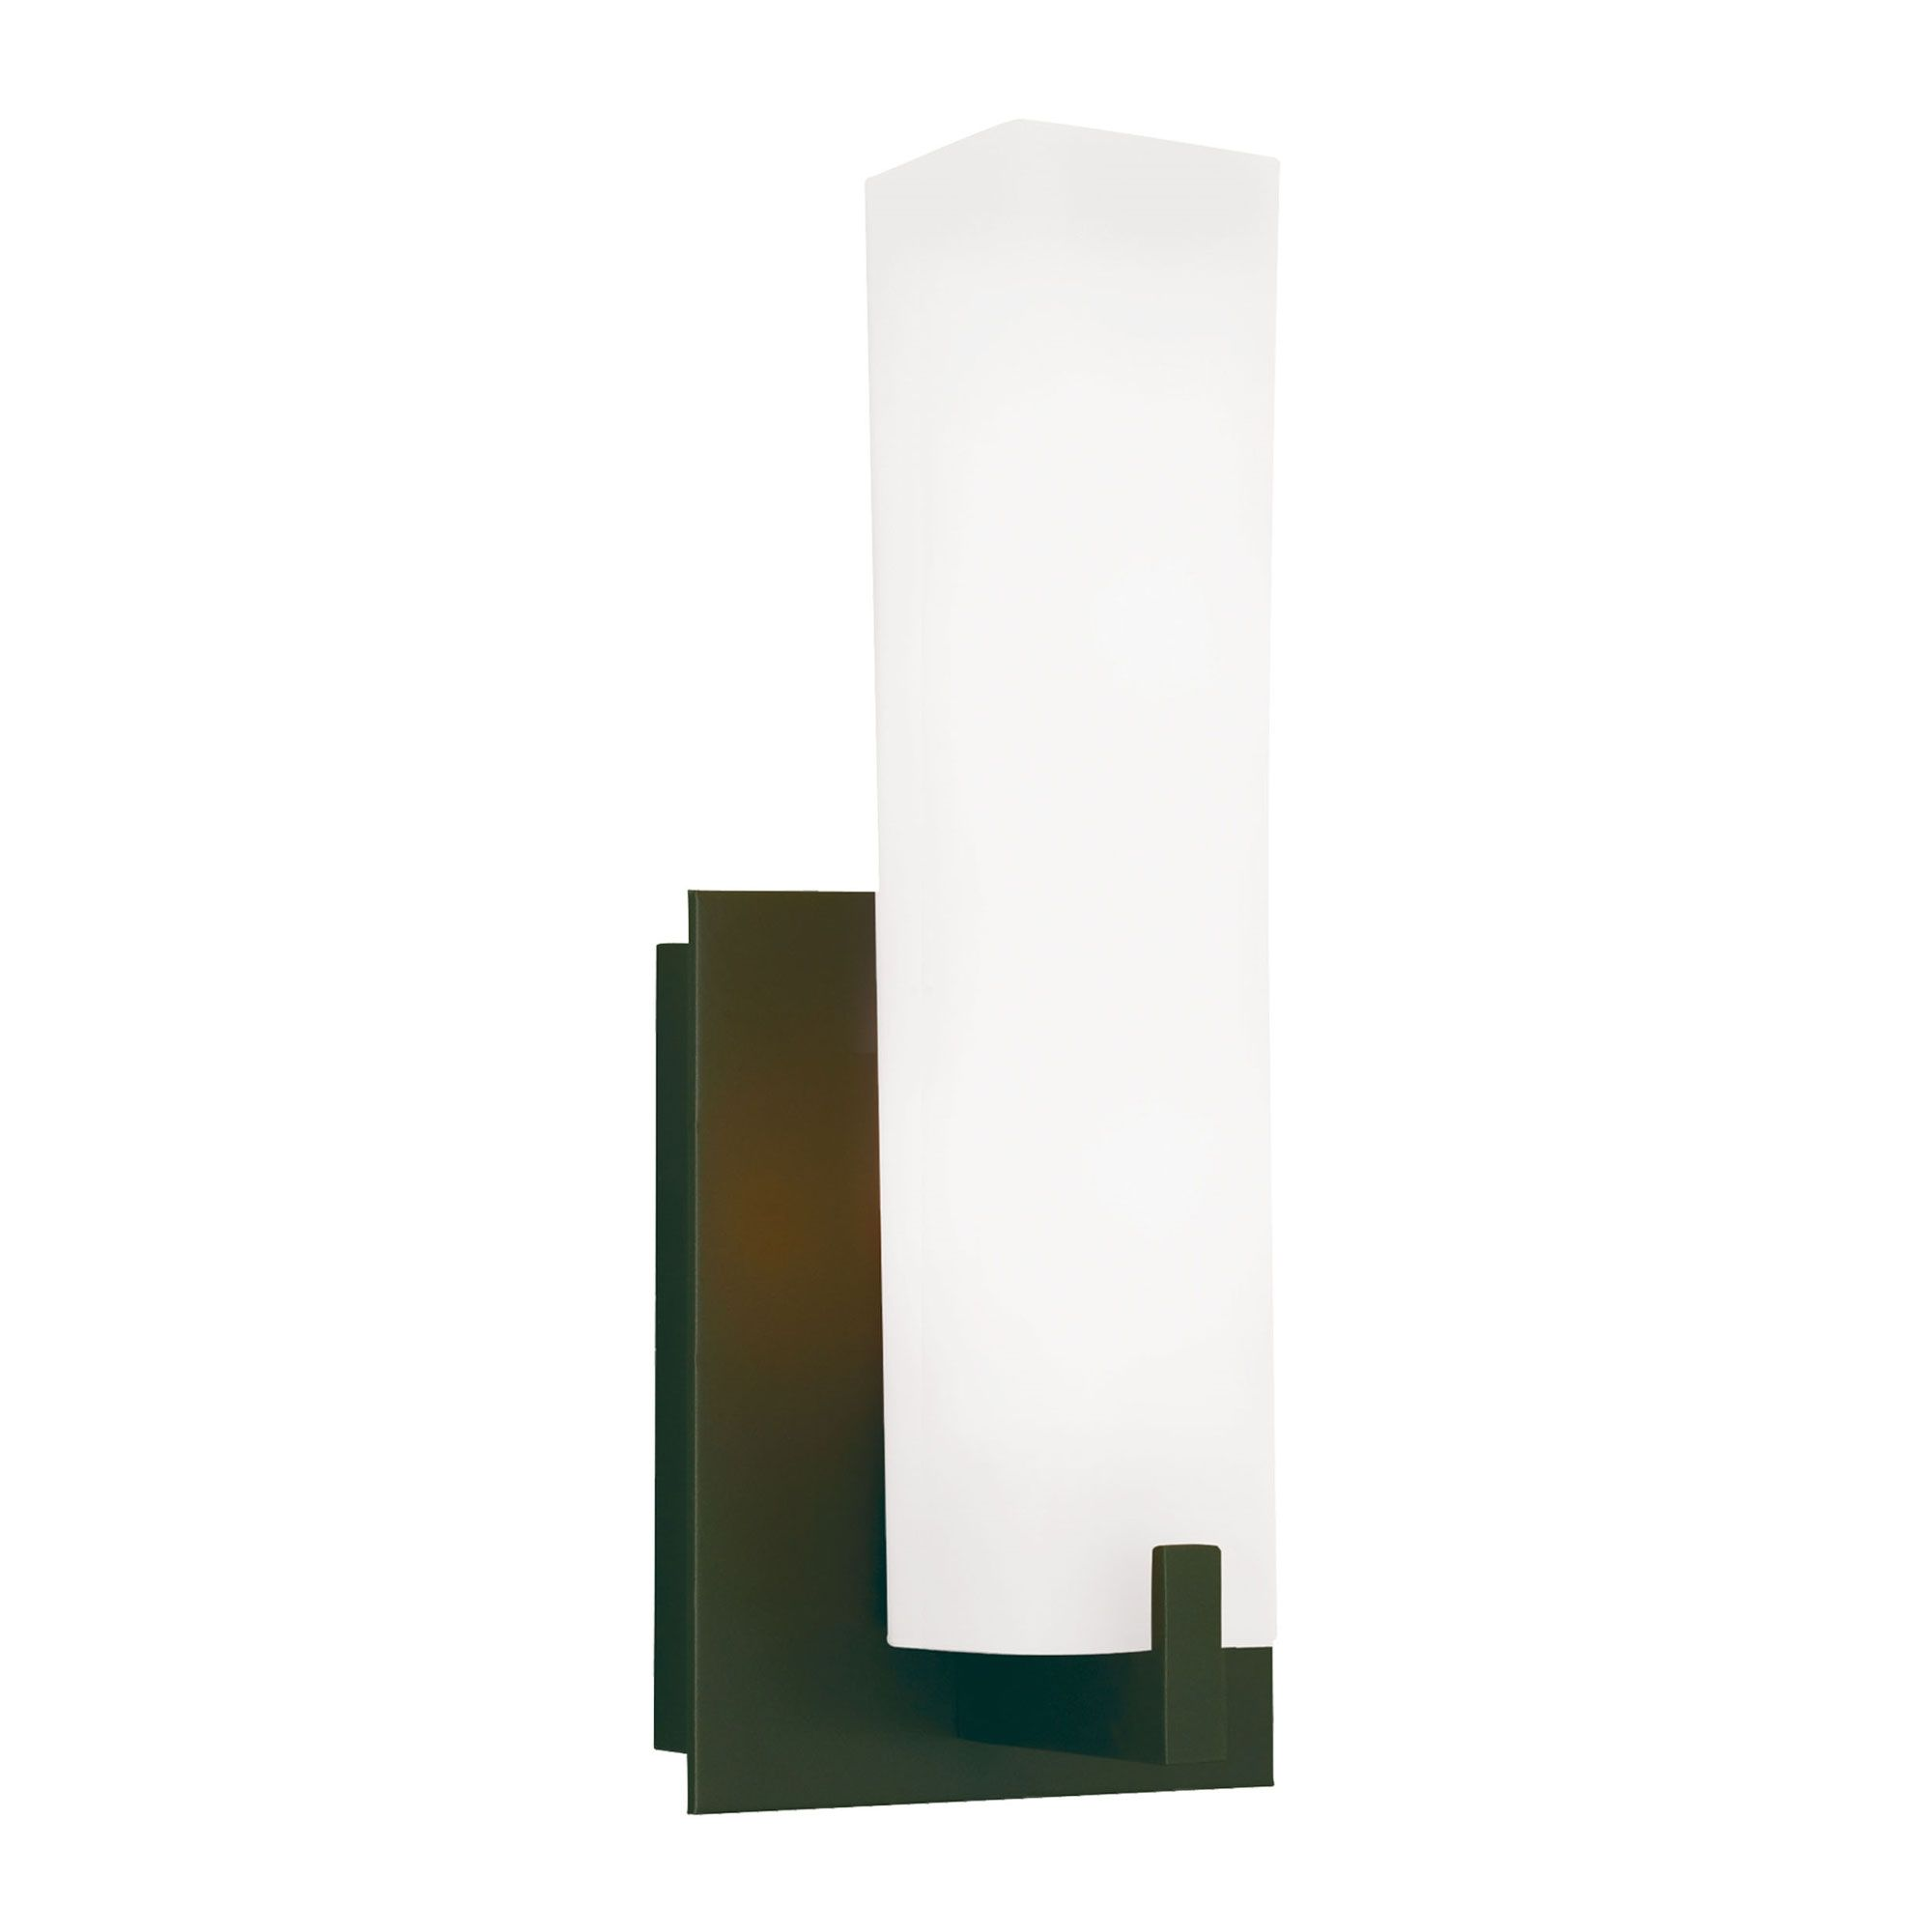 Cosmo Wall Sconce By Tech Lighting 700wscosfs In 2020 Tech Lighting Led Wall Sconce Wall Sconces